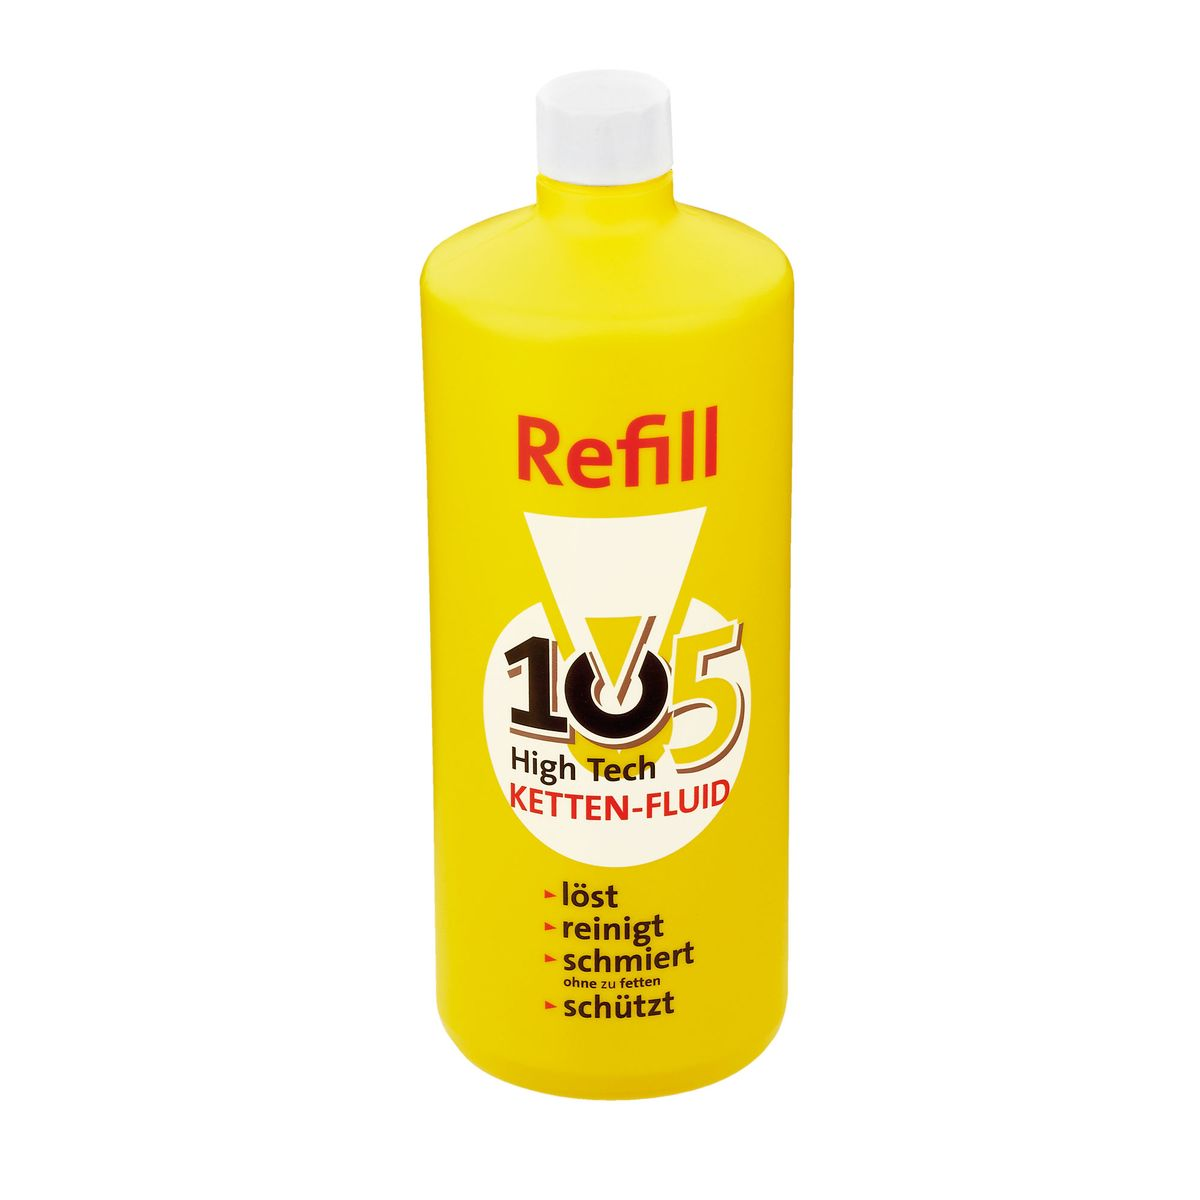 105 High Tech chain fluid Refill